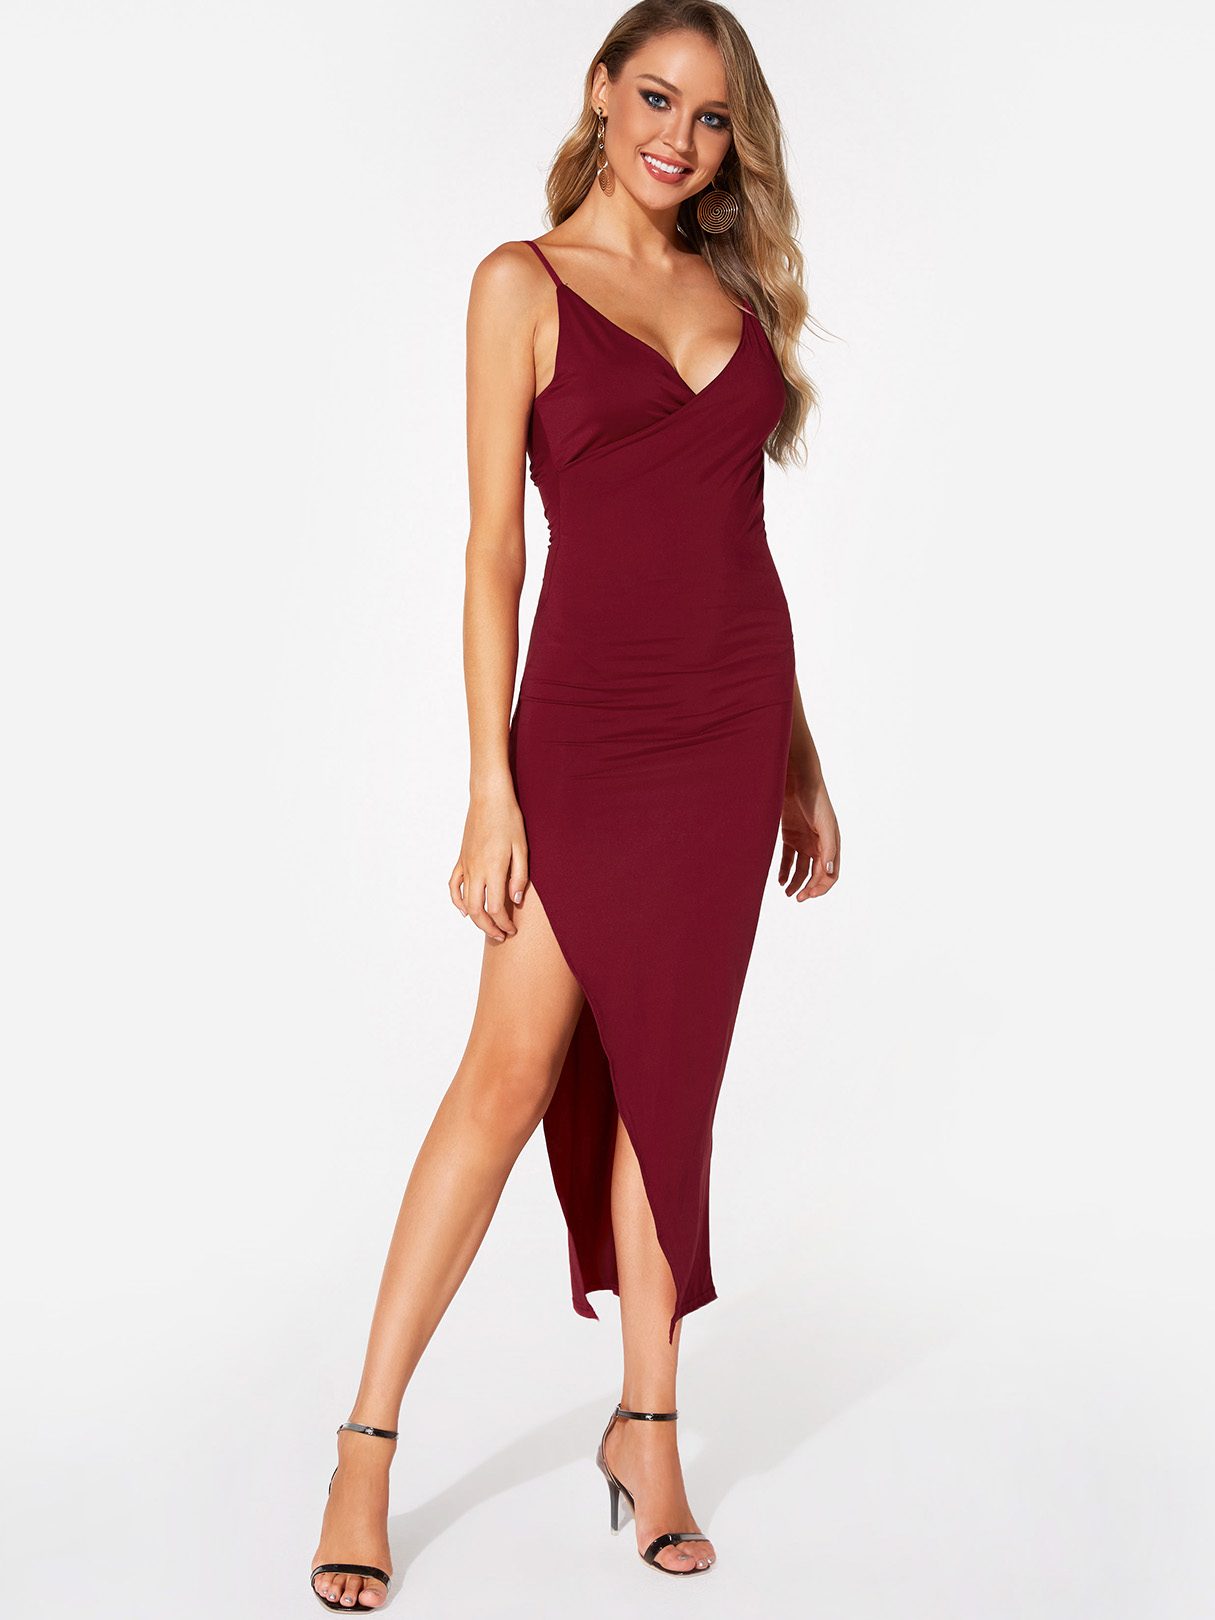 Burgundy Sexy Deep V Neck Elastic Shoulder Strap Maxi Party Dress With Slit Hem